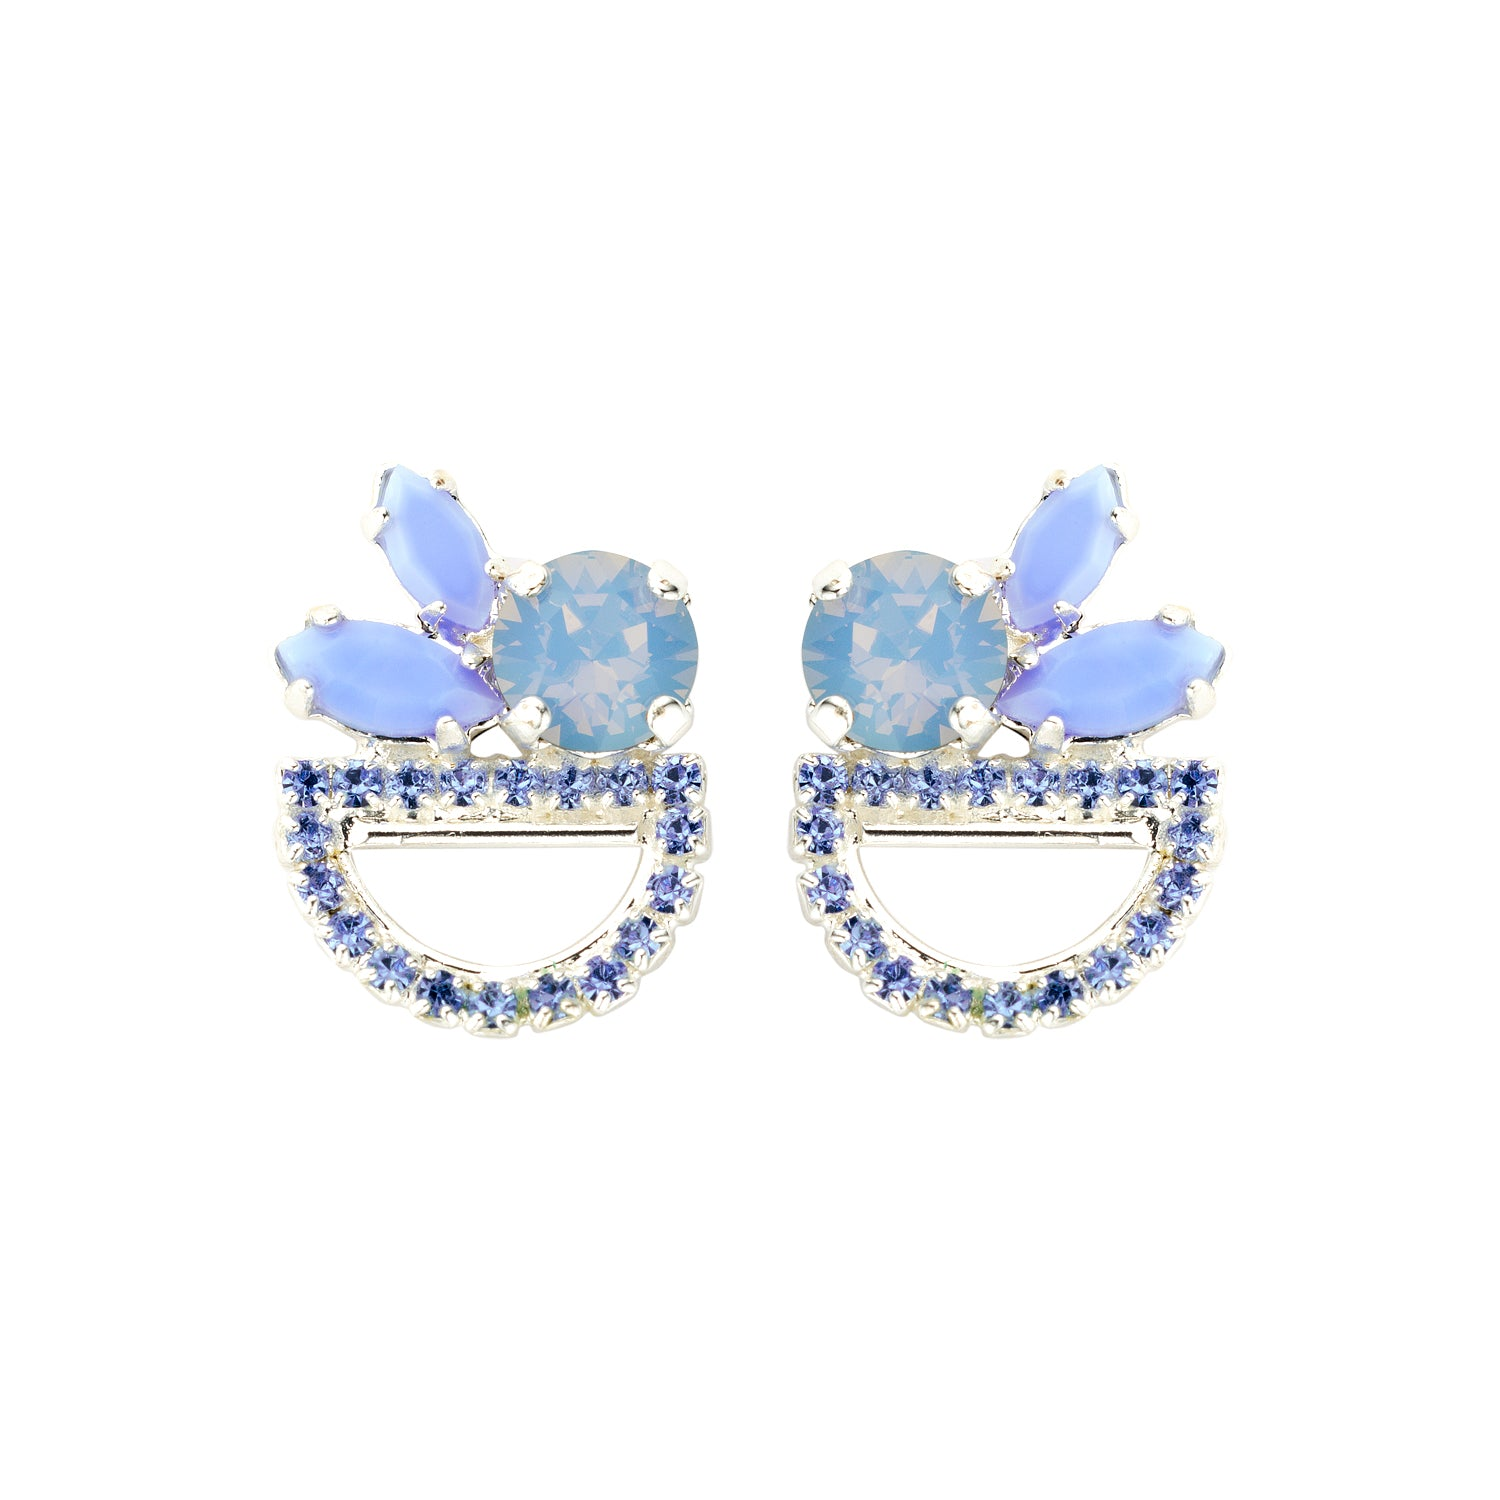 Moon shortie light blue earrings - Souvenirs de Pomme